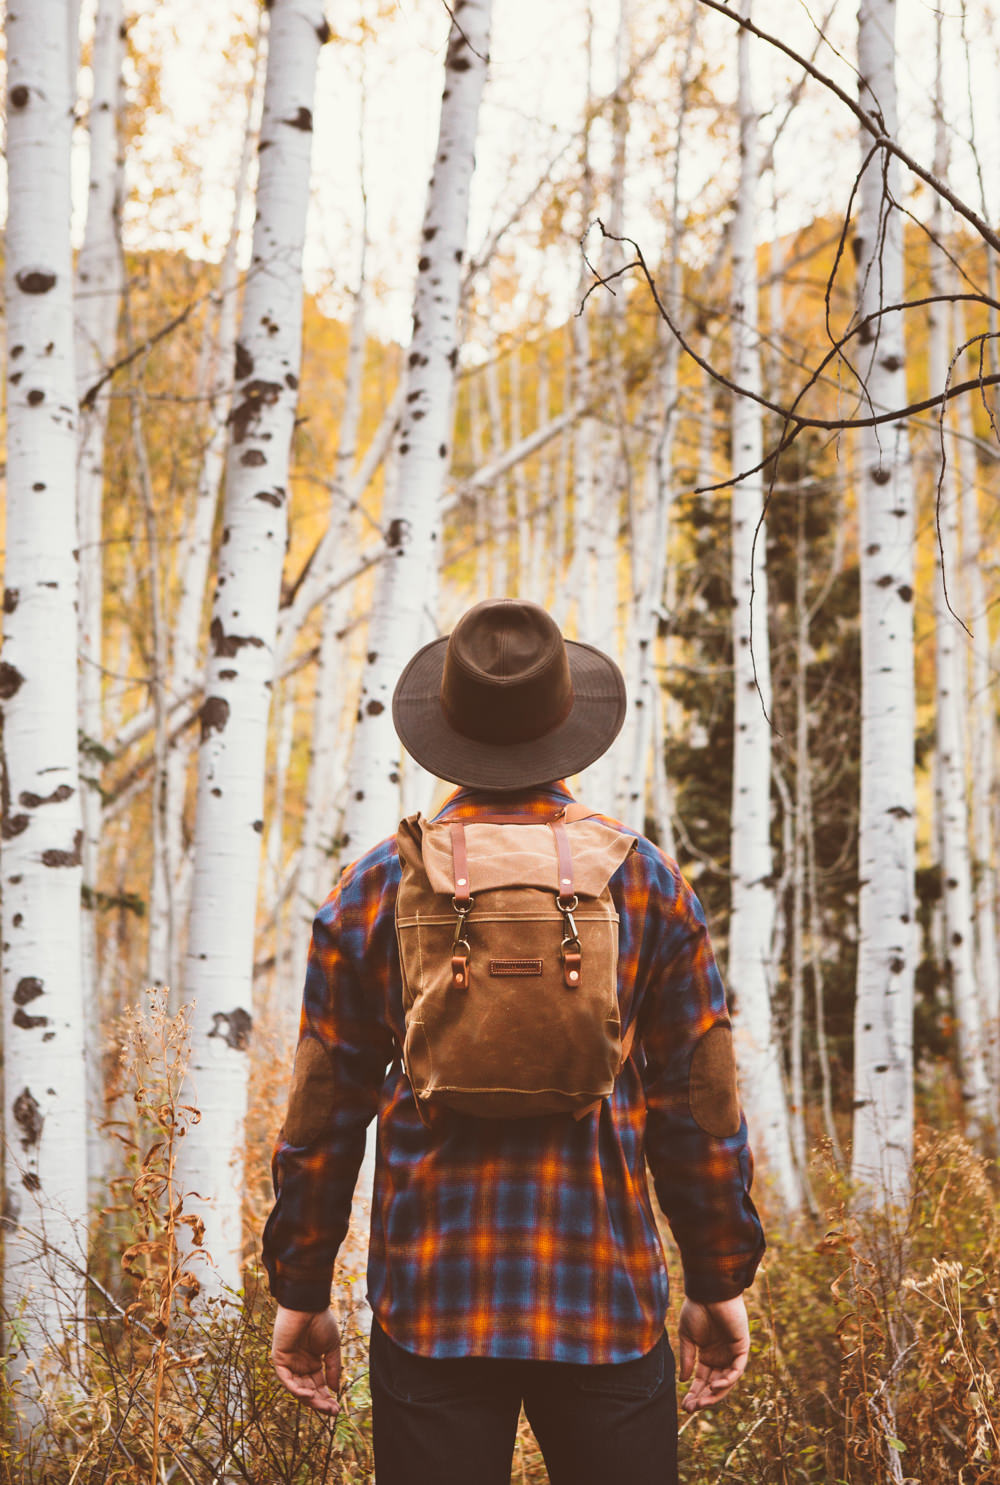 Brandon-Burk-Photography: A man in a plaid shirt and hat with his back to the camera in front of an aspen grove.